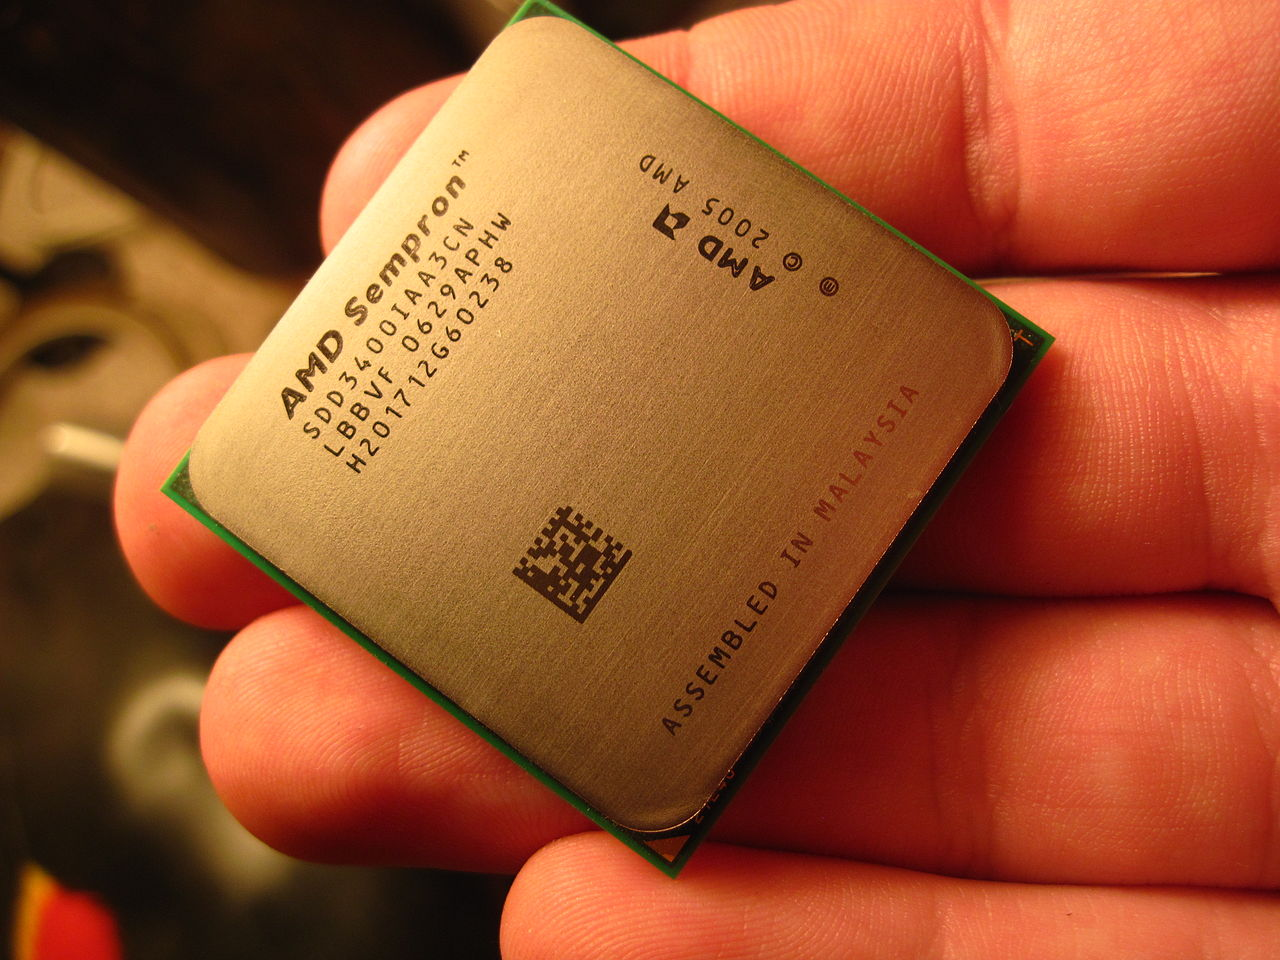 AMD SEMPRON 3400 DRIVERS FOR MAC DOWNLOAD